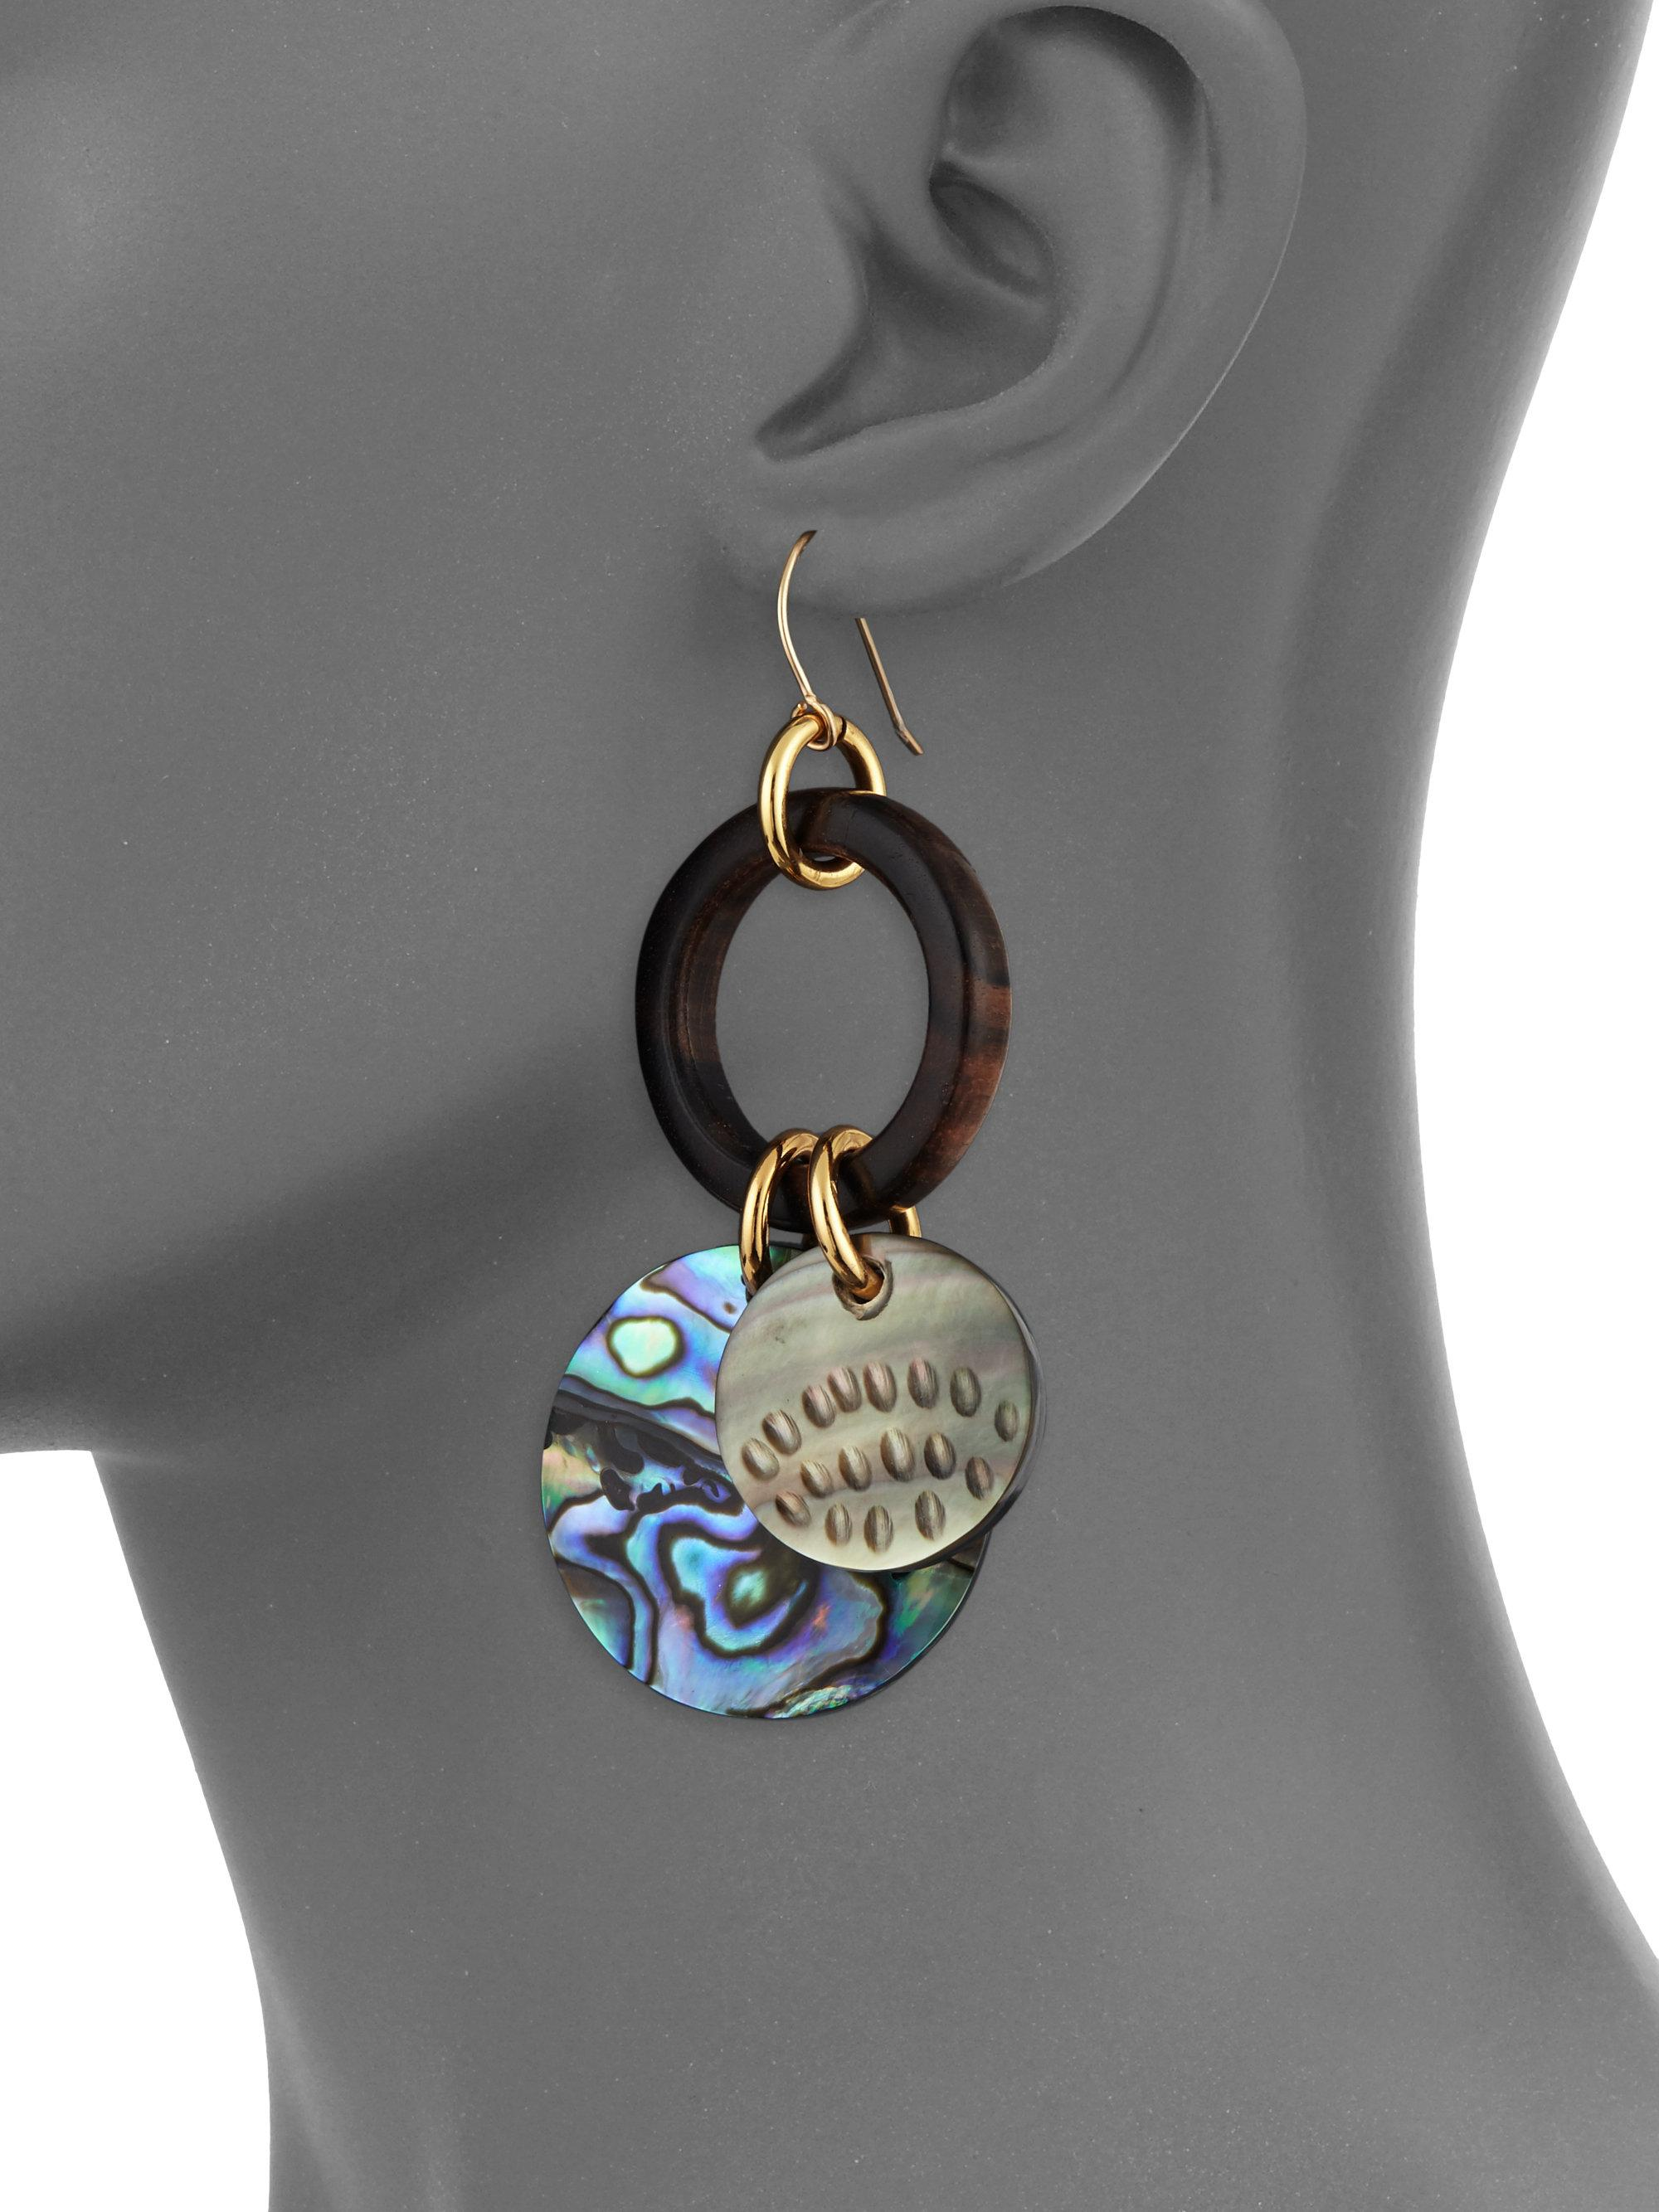 post tuey round stud products from thailand swirl fashioned mesmerizing details silver these shiva shell earring se abalone artisan stone rainbow sterling of designed wht charismatic earrings feature a modish